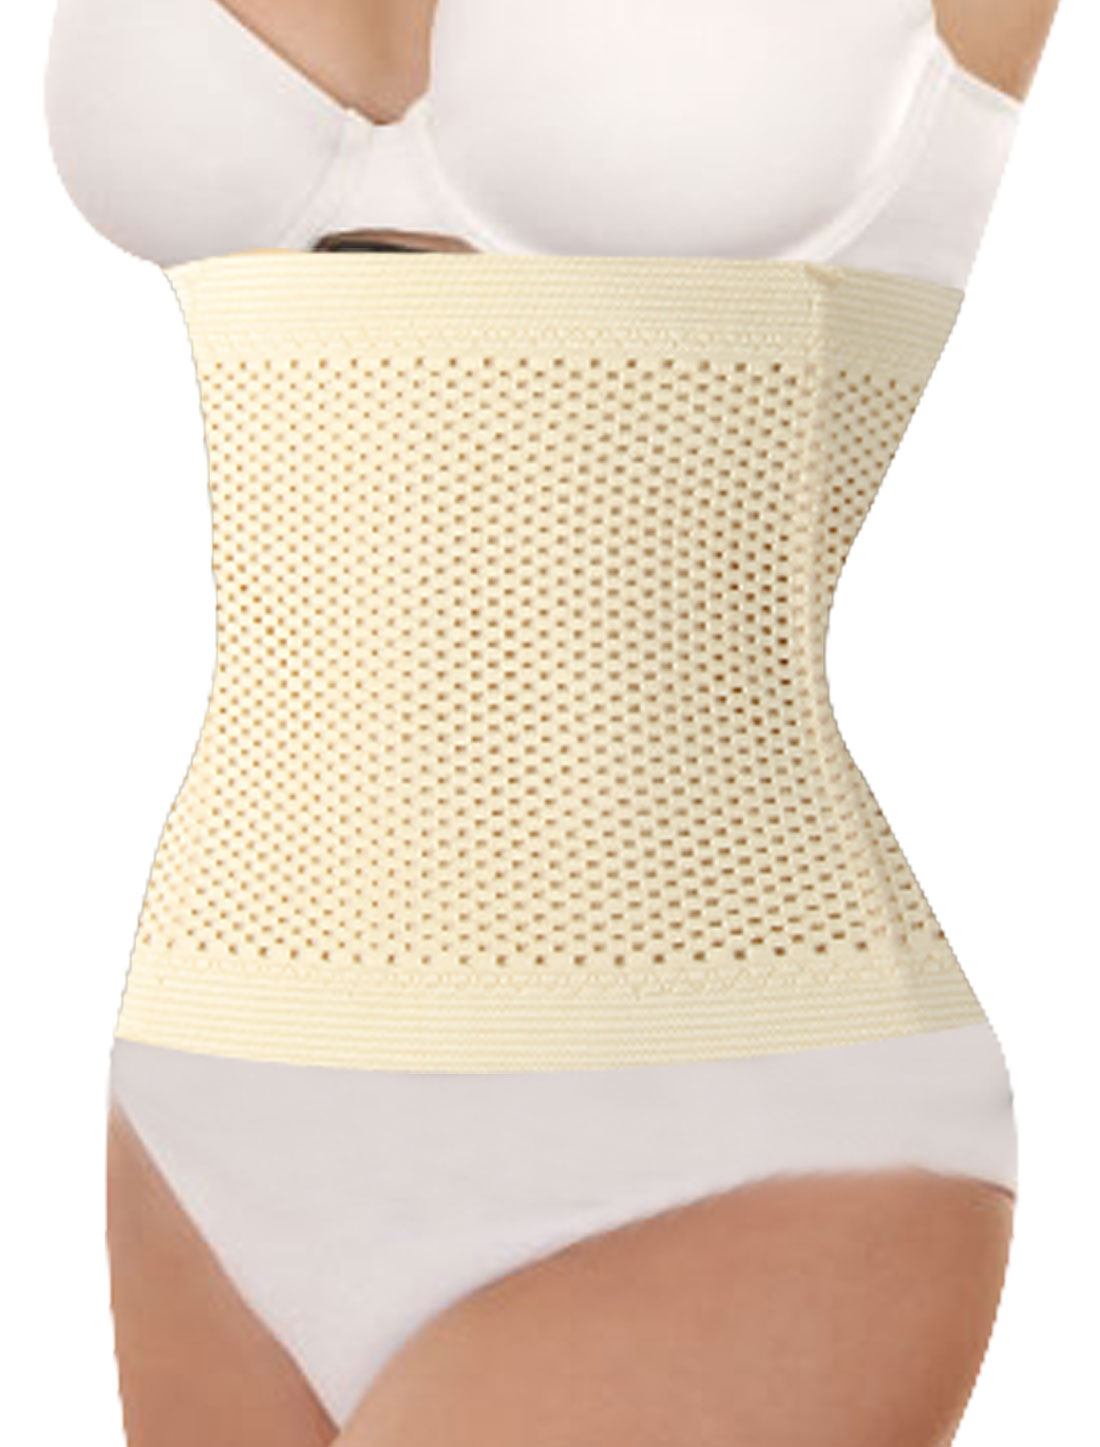 Women Hollow Out Holes Tummy Girdle Belt Shapewear Corset Waist Cincher Beige XS